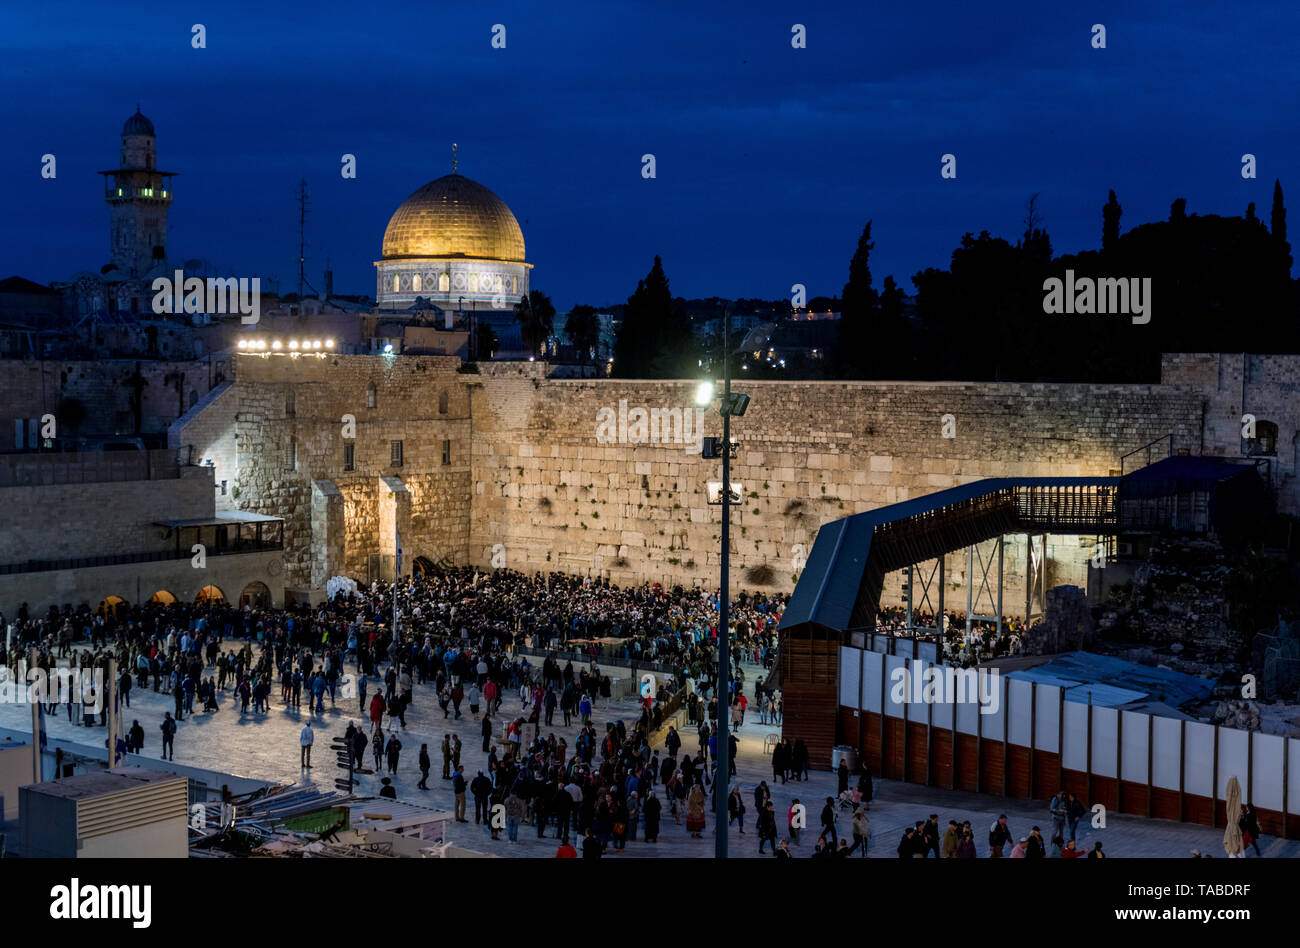 Jerusalem,Israel,29-March-2019:Skyline of Jerusalem at the western wall or wailing waa at night during sabbath,sabbath starts the friday evening in is - Stock Image